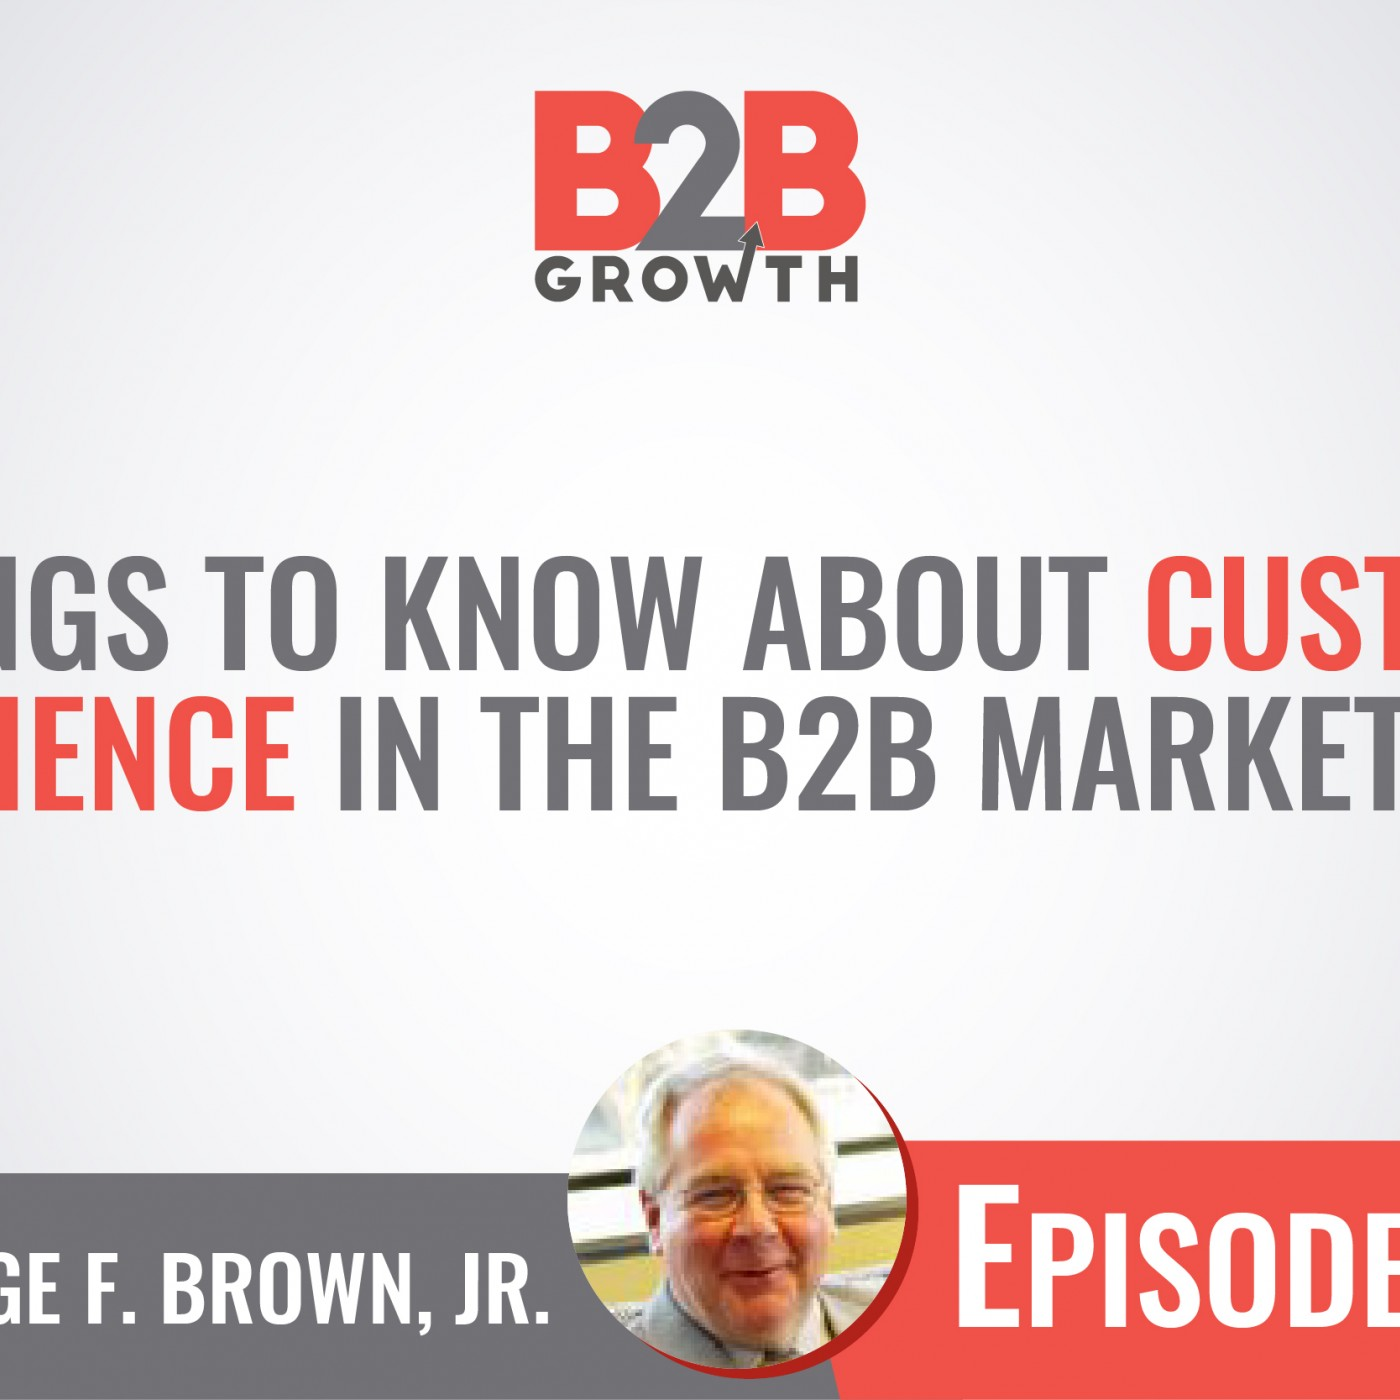 557: 3 Things to Know About Customer Experience in the B2B Marketplace w/ George Brown, Jr.